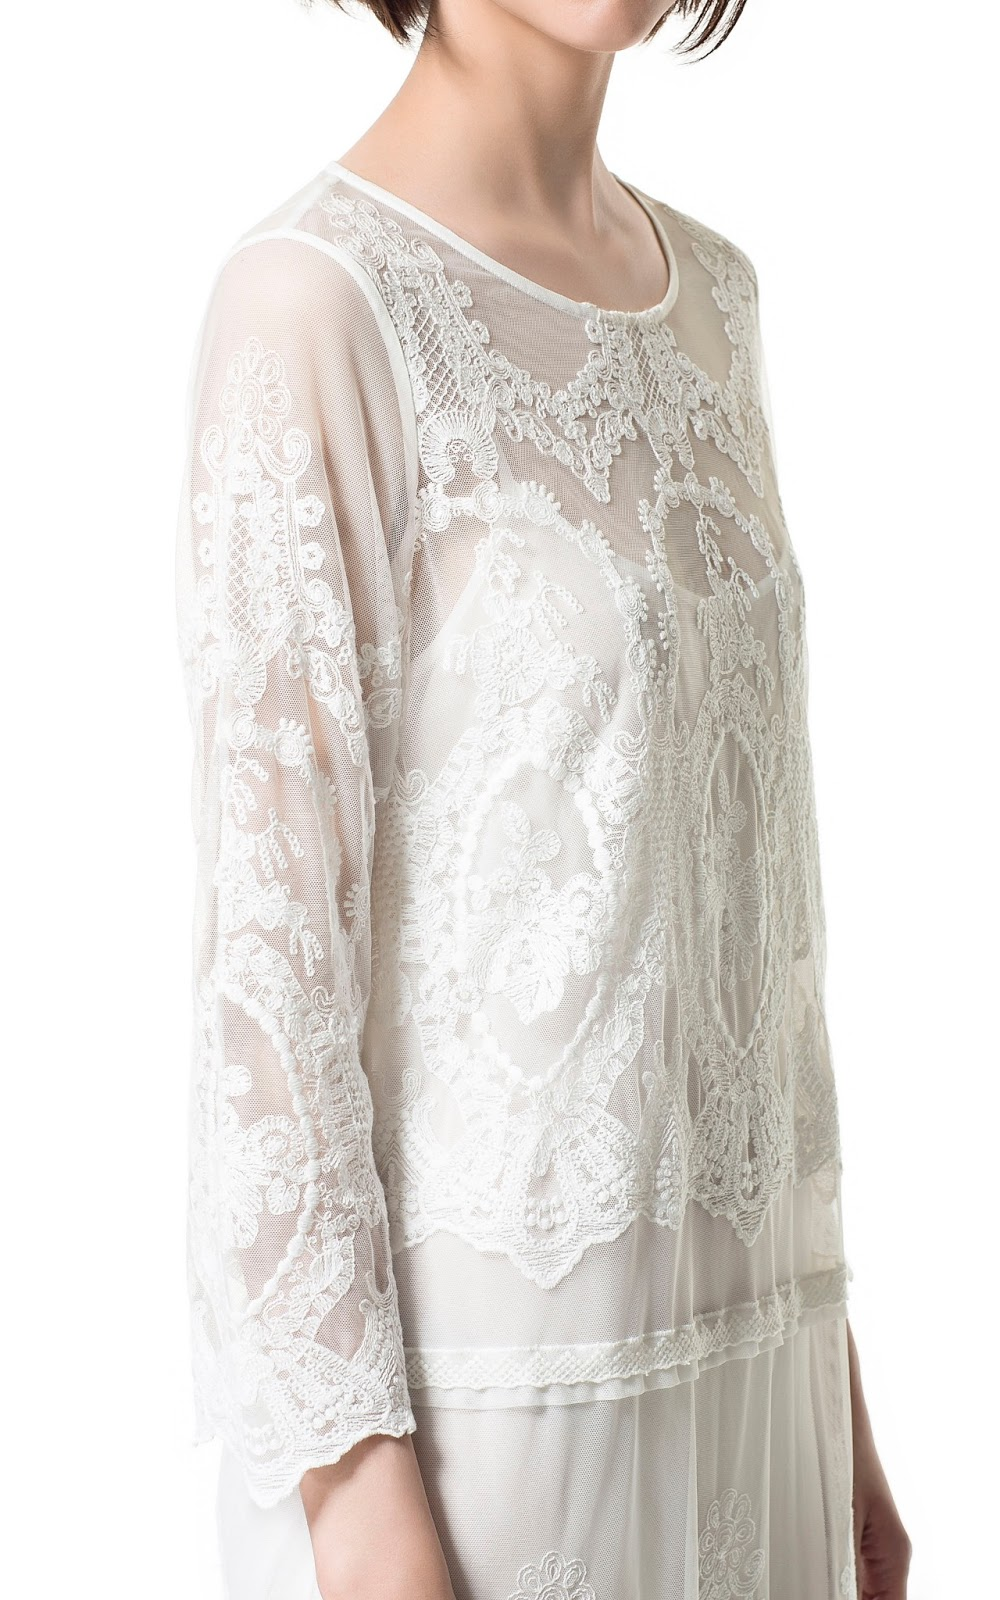 Zara new collection long lace embroidered off white